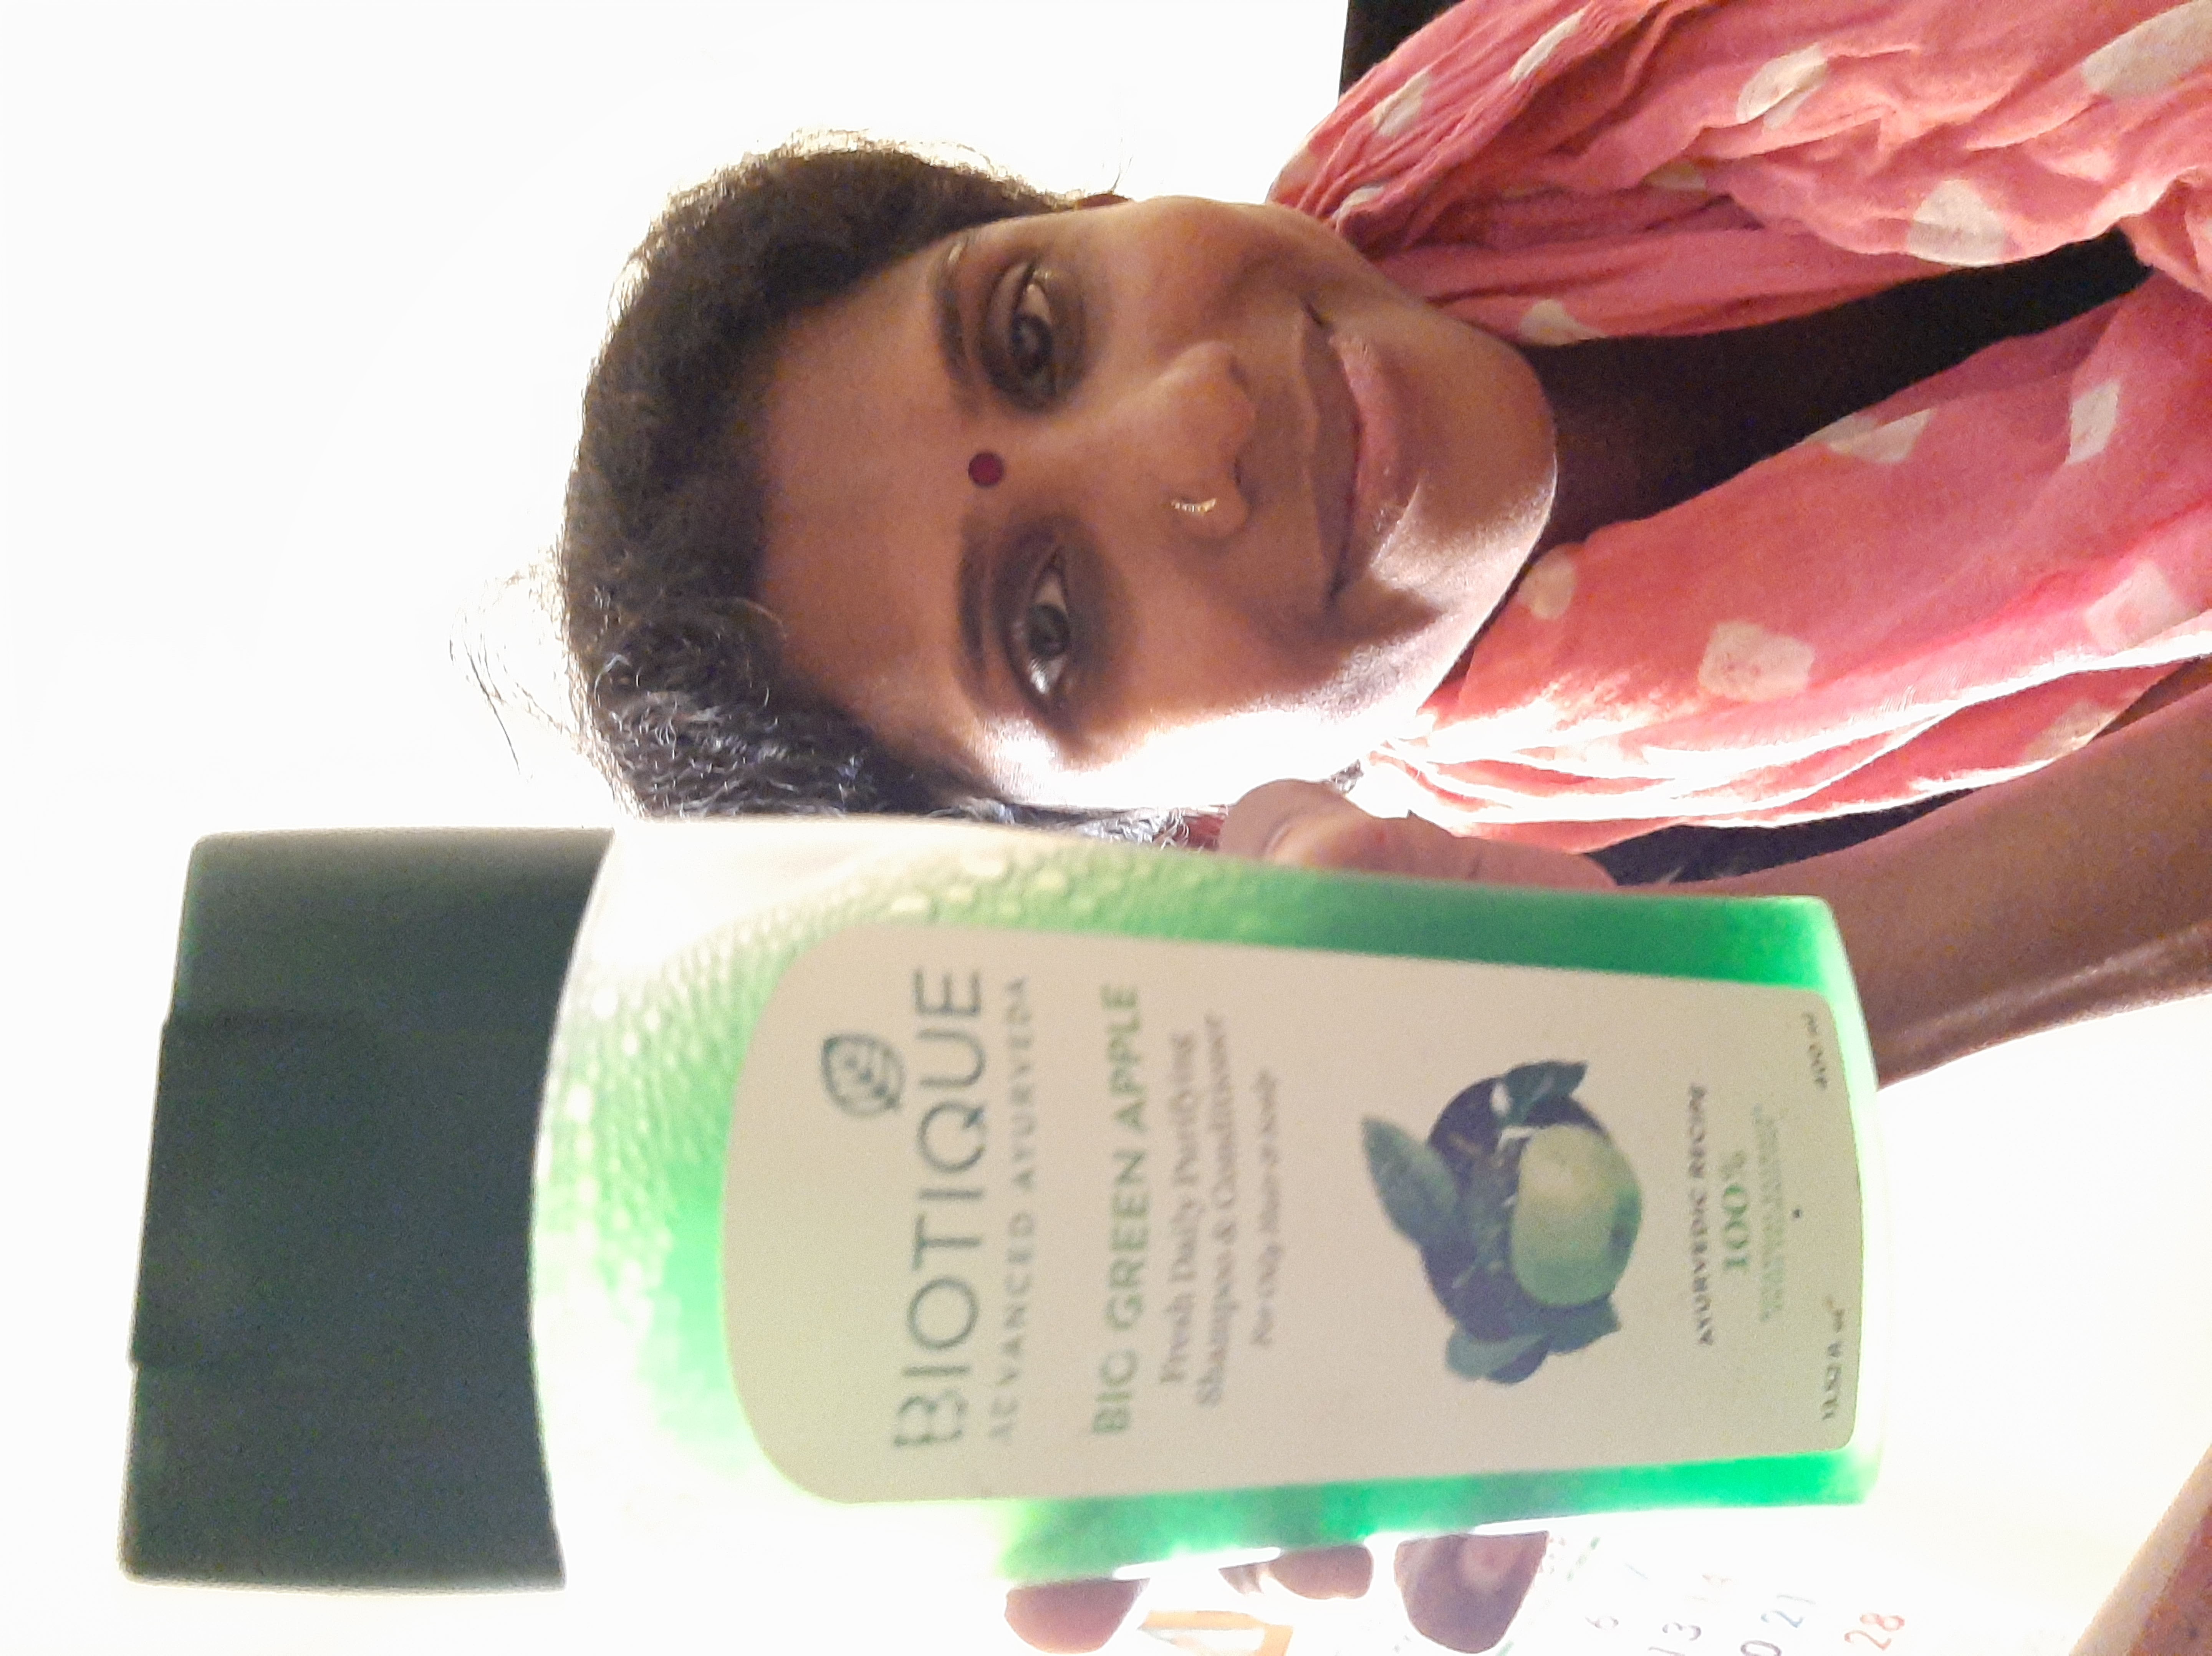 Biotique Bio Green Apple Fresh Daily Purifying Shampoo & Conditioner pic 2-Cleans effective-By saraswathig